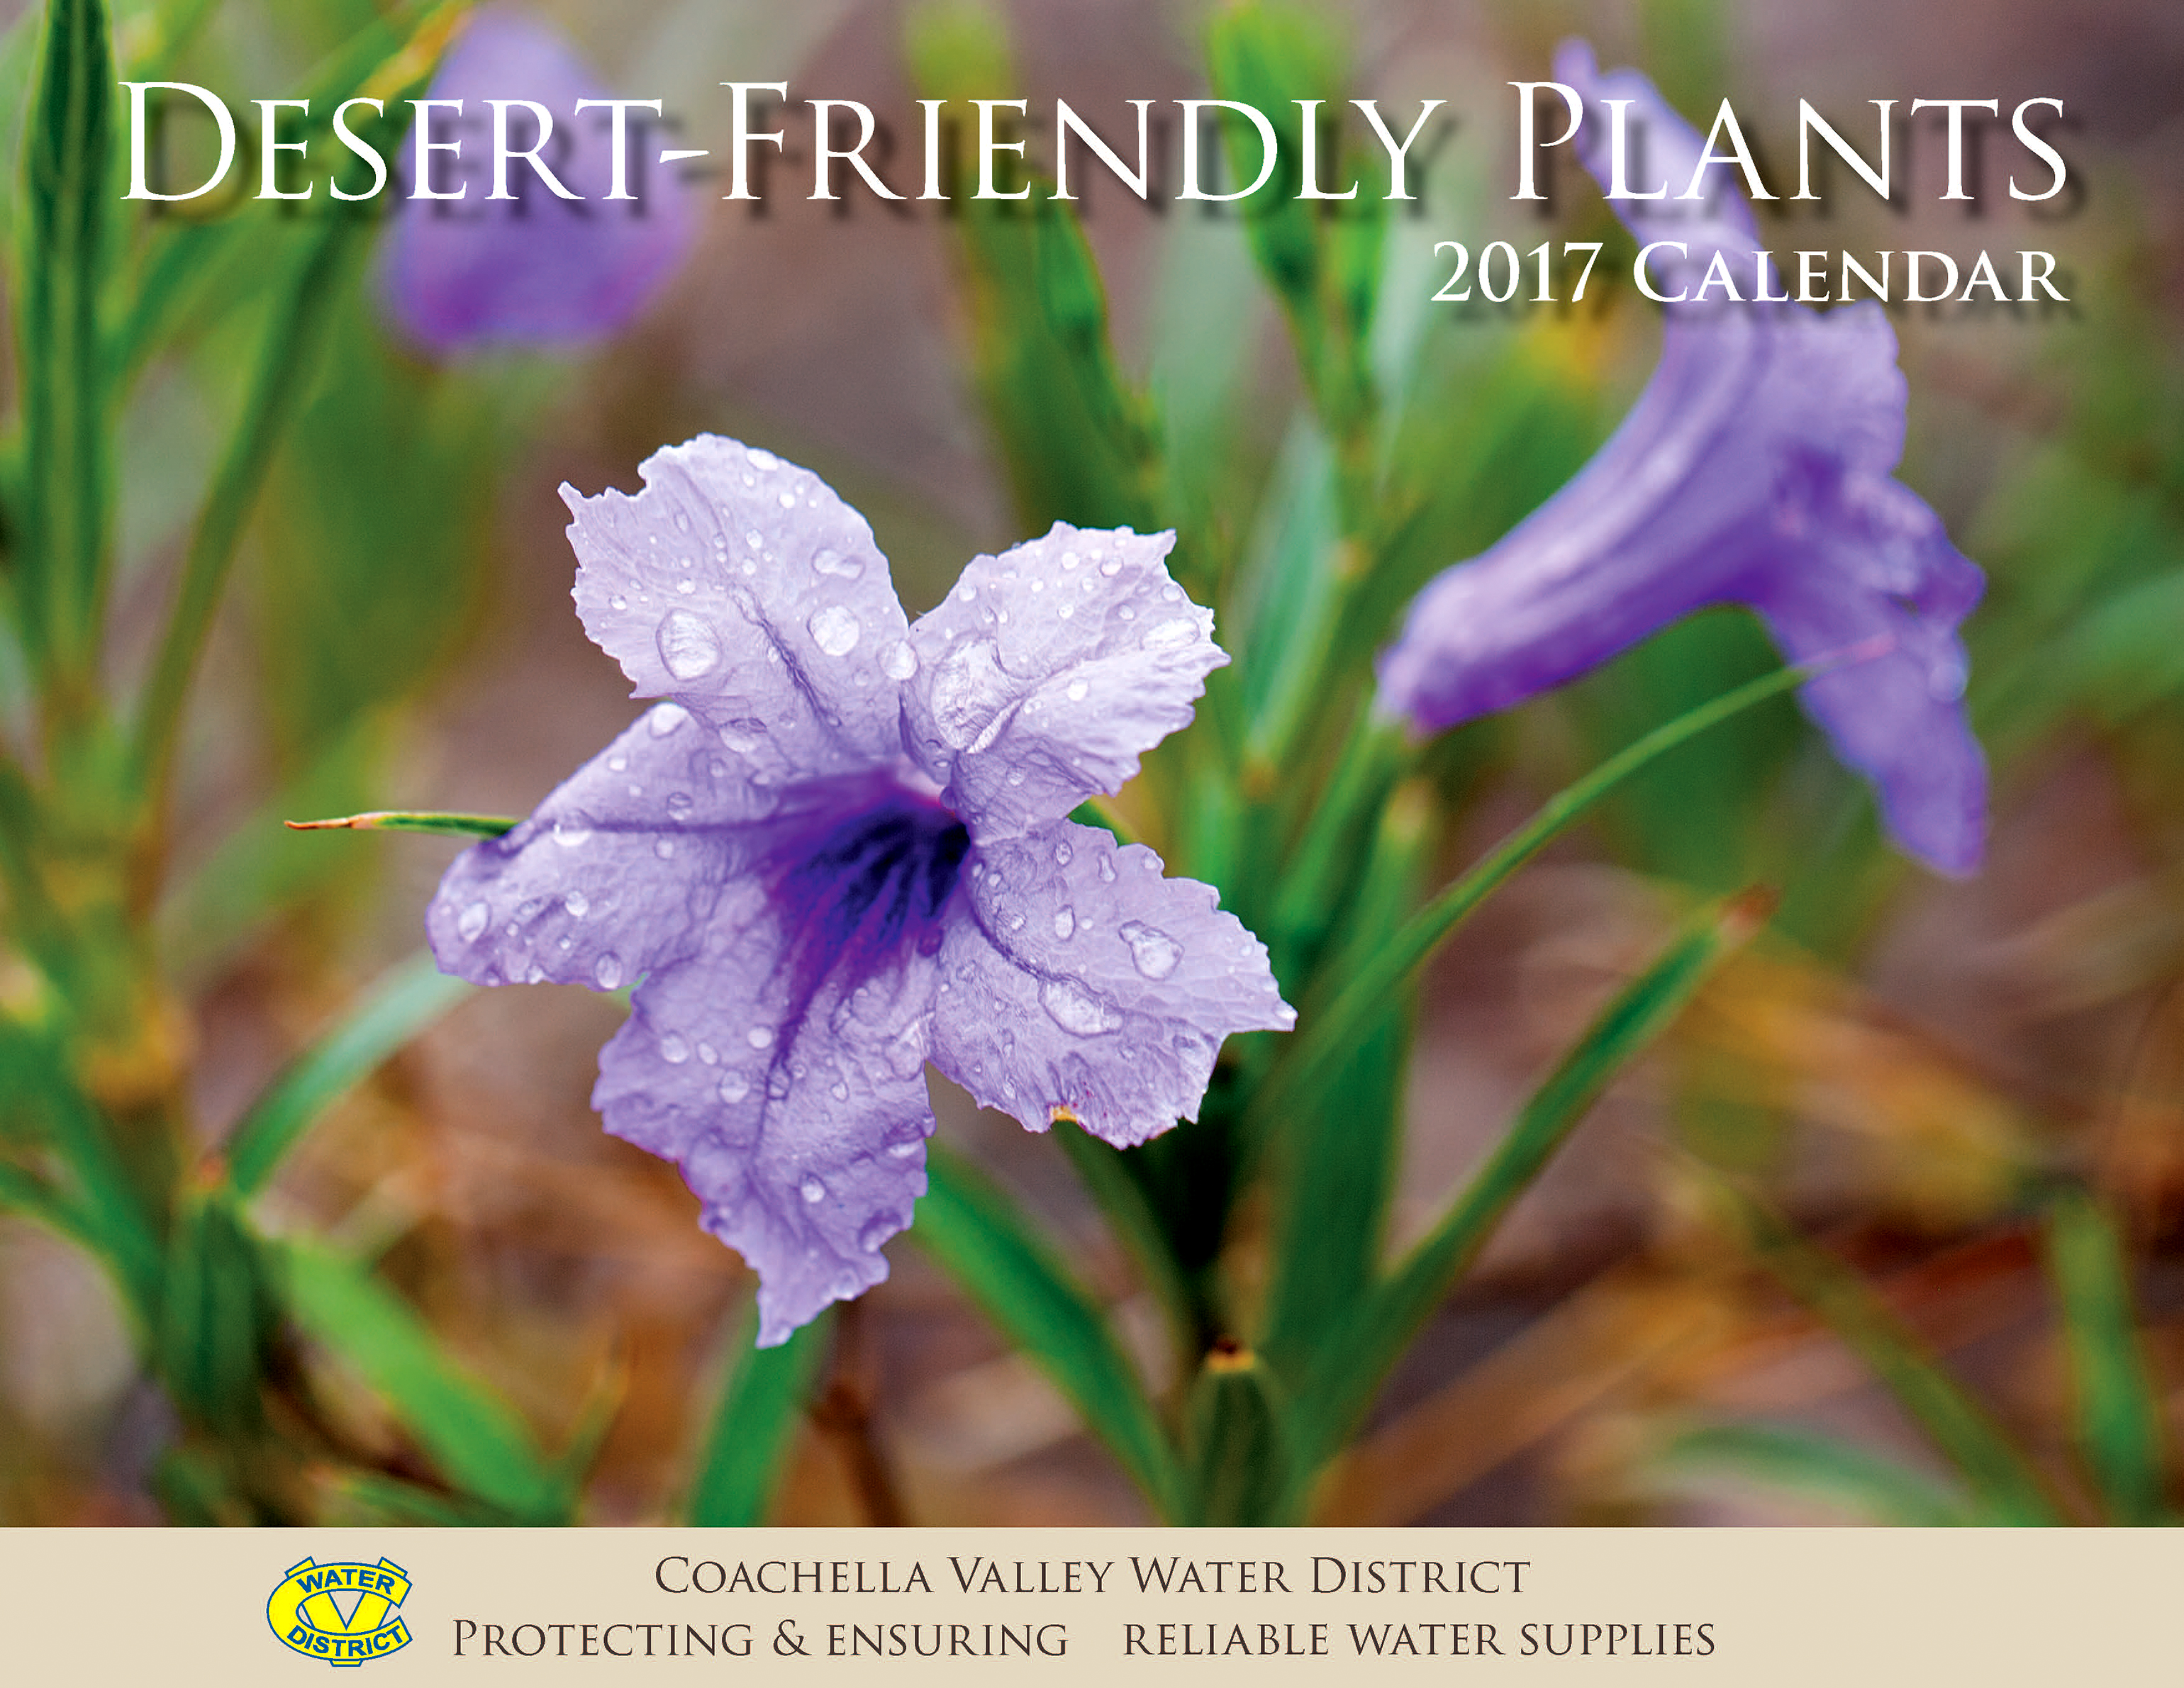 2017 Desert-Friendly Calendar Cover